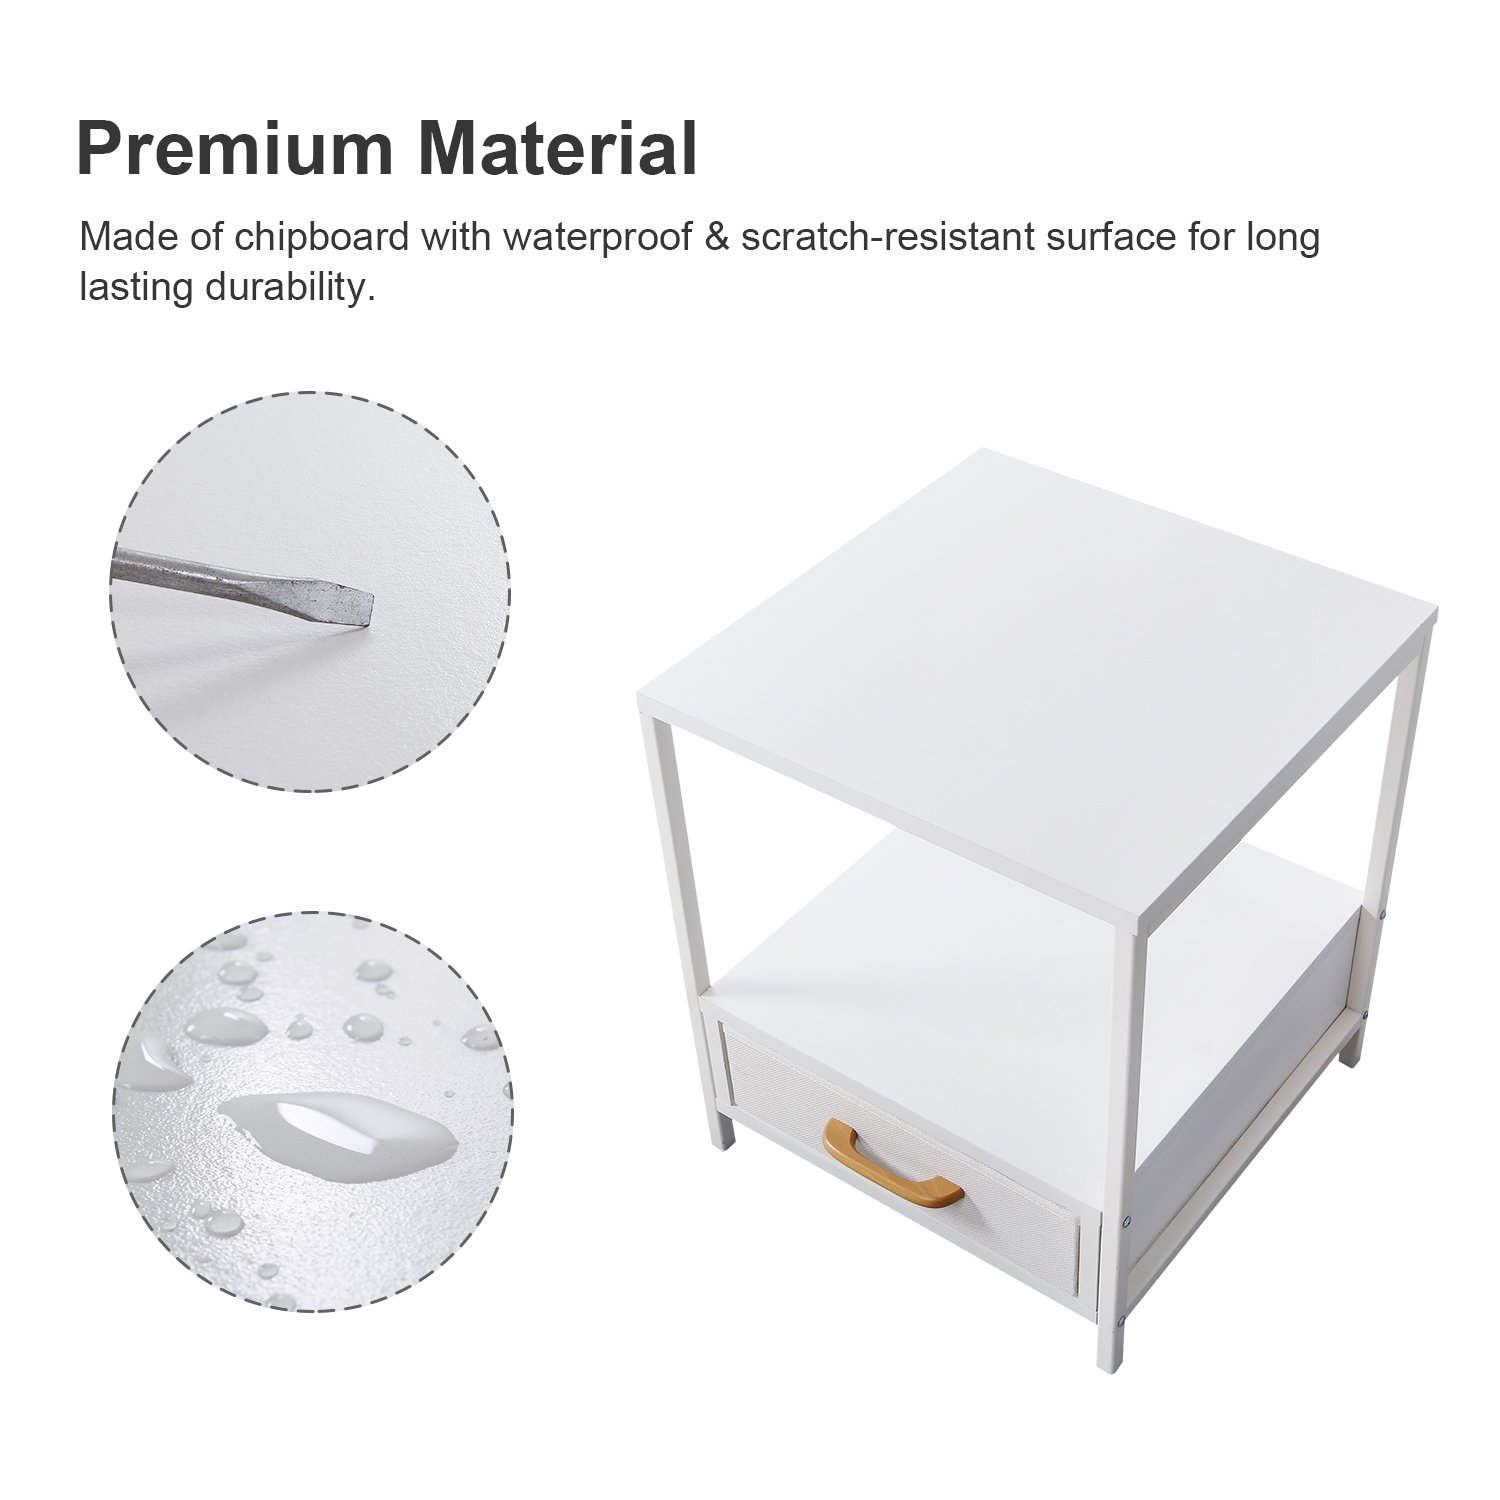 White Sofa Table for Livingroom Square Nightstand with Fabric Drawer for Bedroom Modern Design 15.7 /× 15.7 /× 20 inches Lifewit 2 PCS 2-Tier Side Table End Table